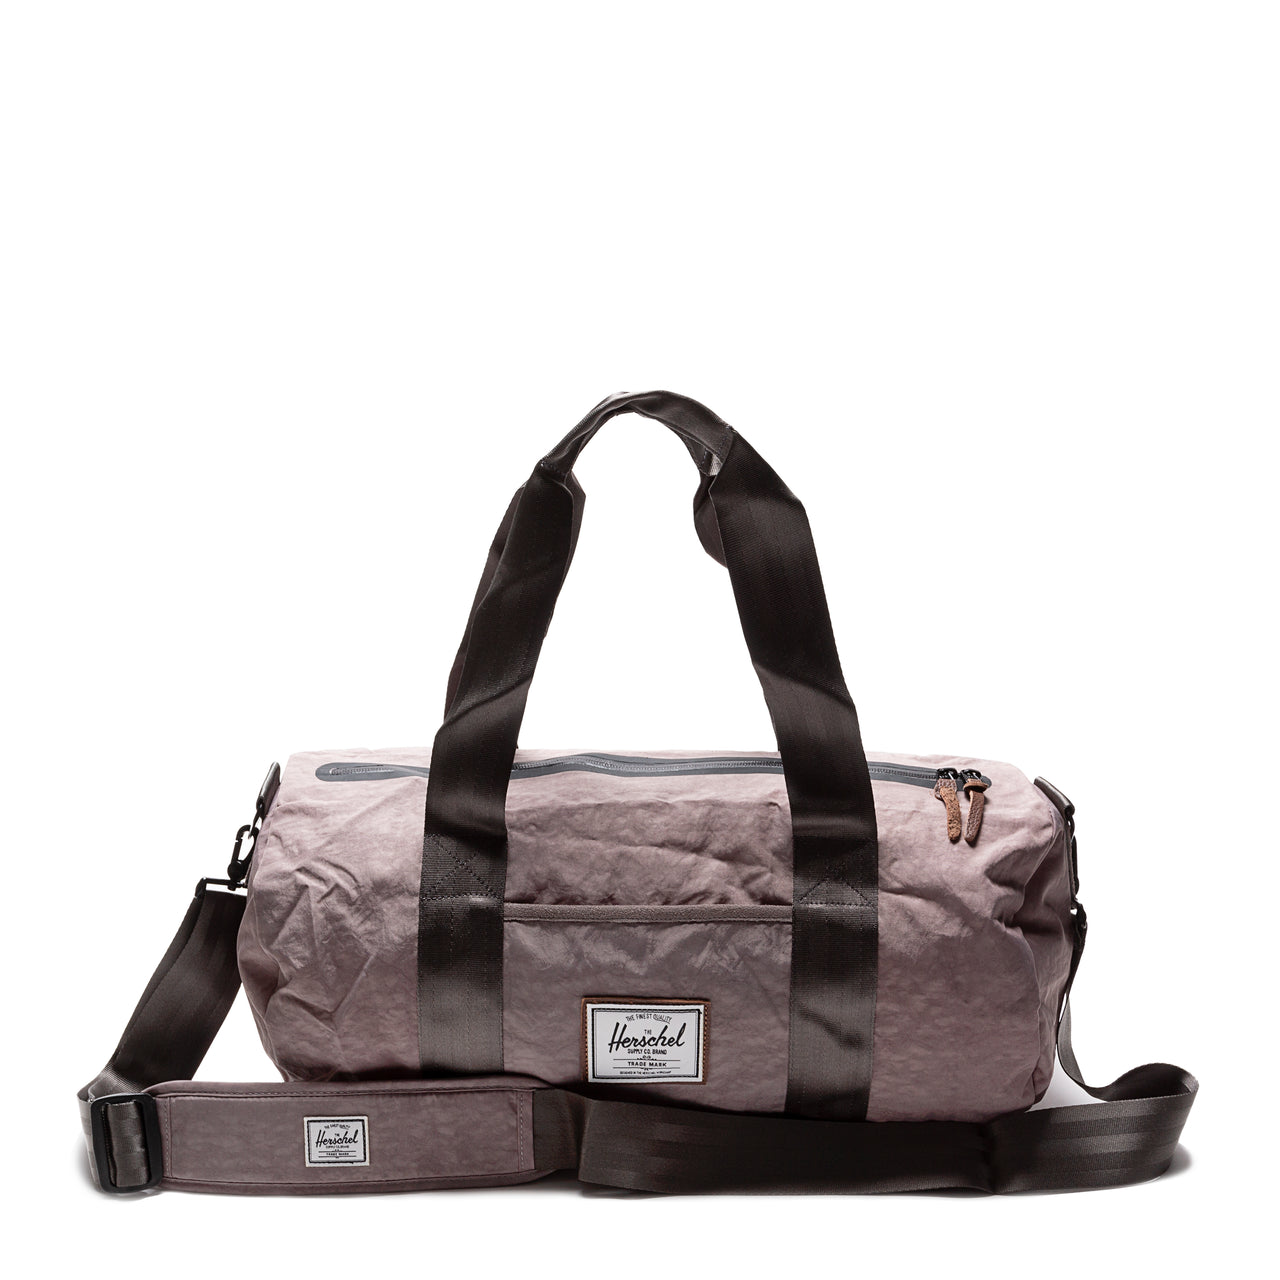 SUTTON MID-VOLUME BAG 22L